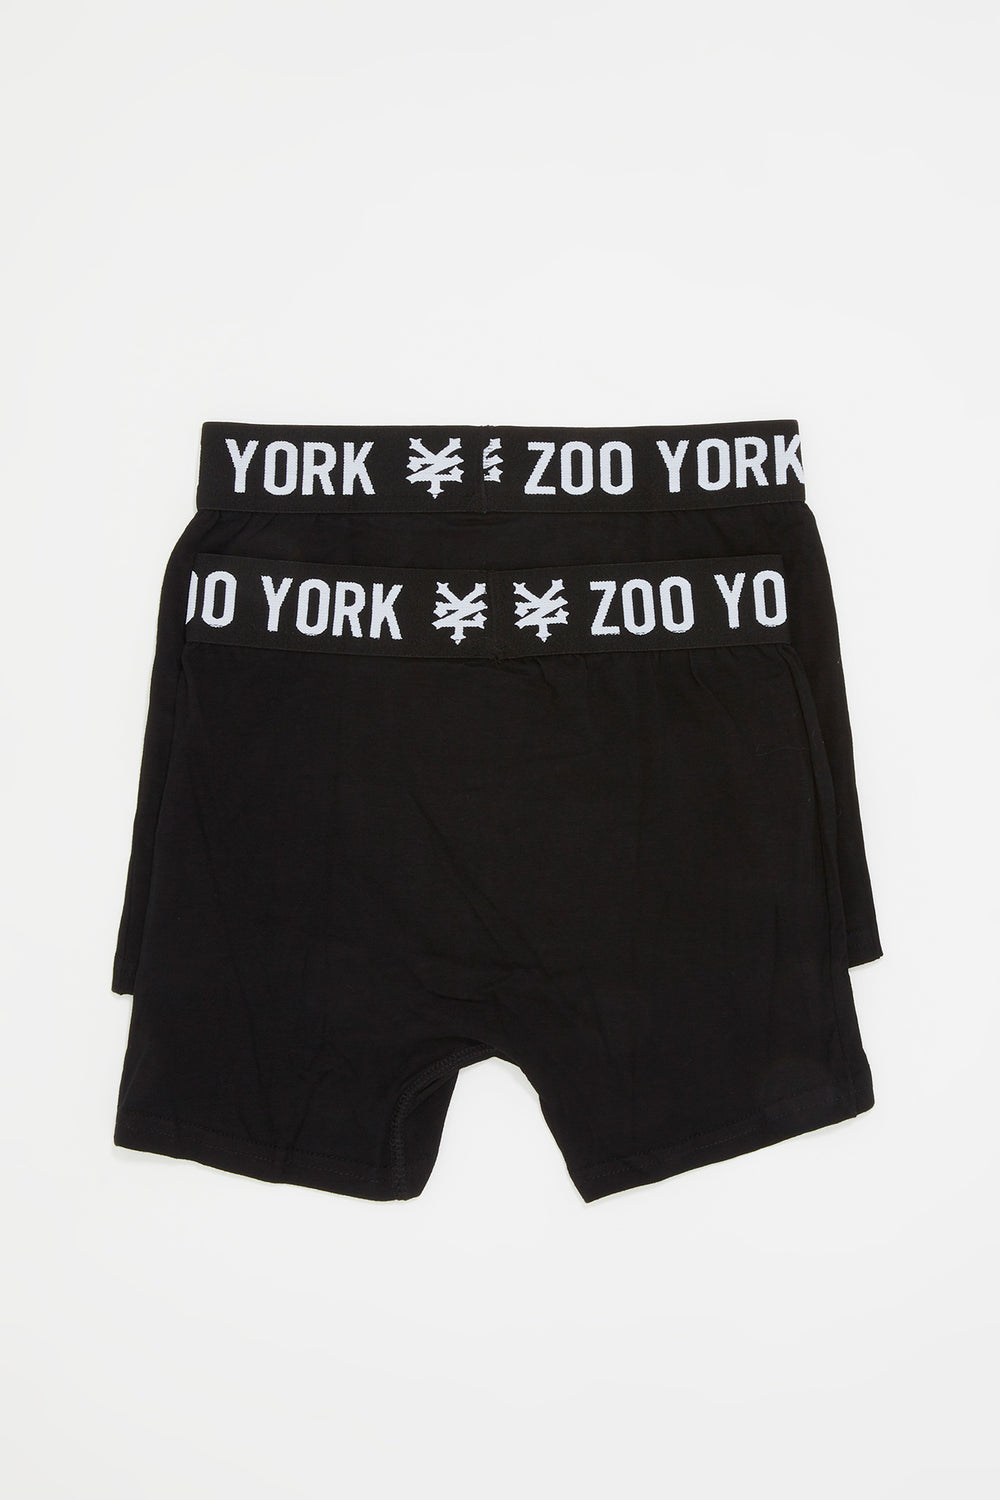 Zoo York Mens 2-Pack Cotton Boxer Briefs Black